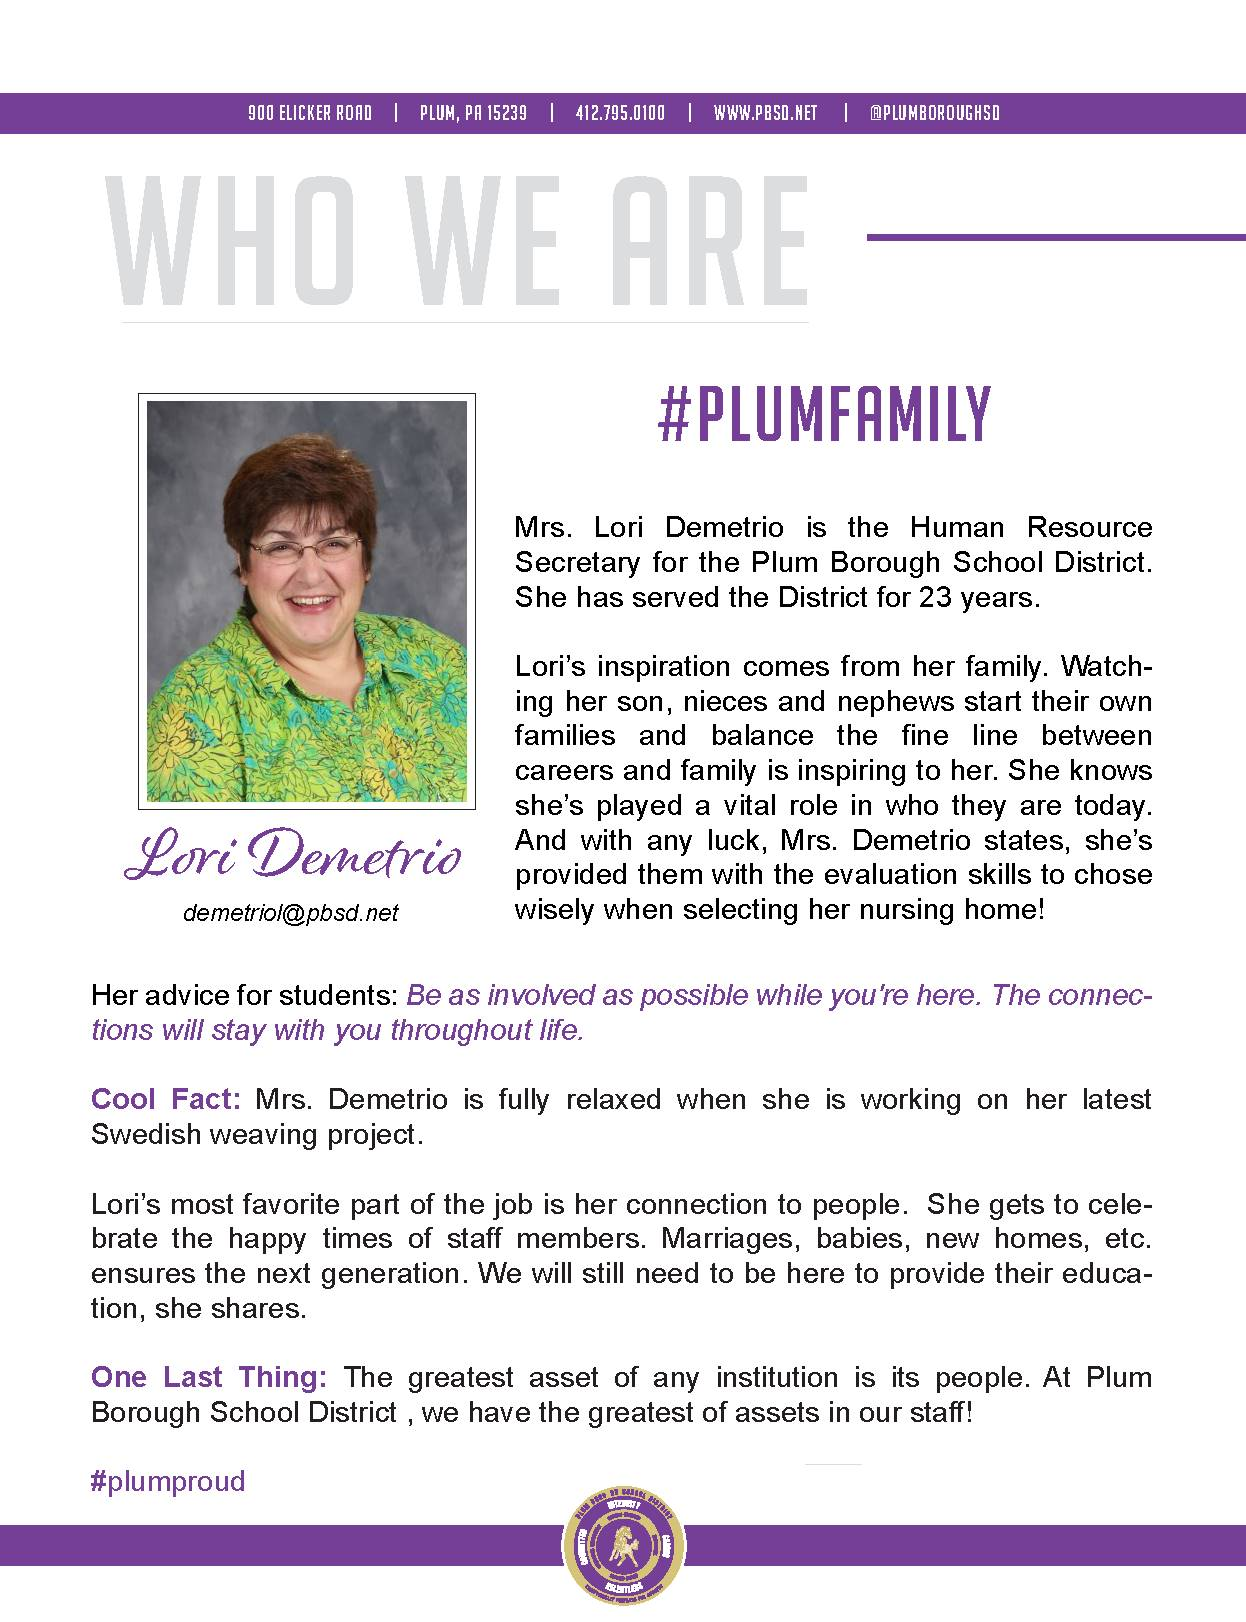 Who We Are Wednesday features Lori Demetrio.